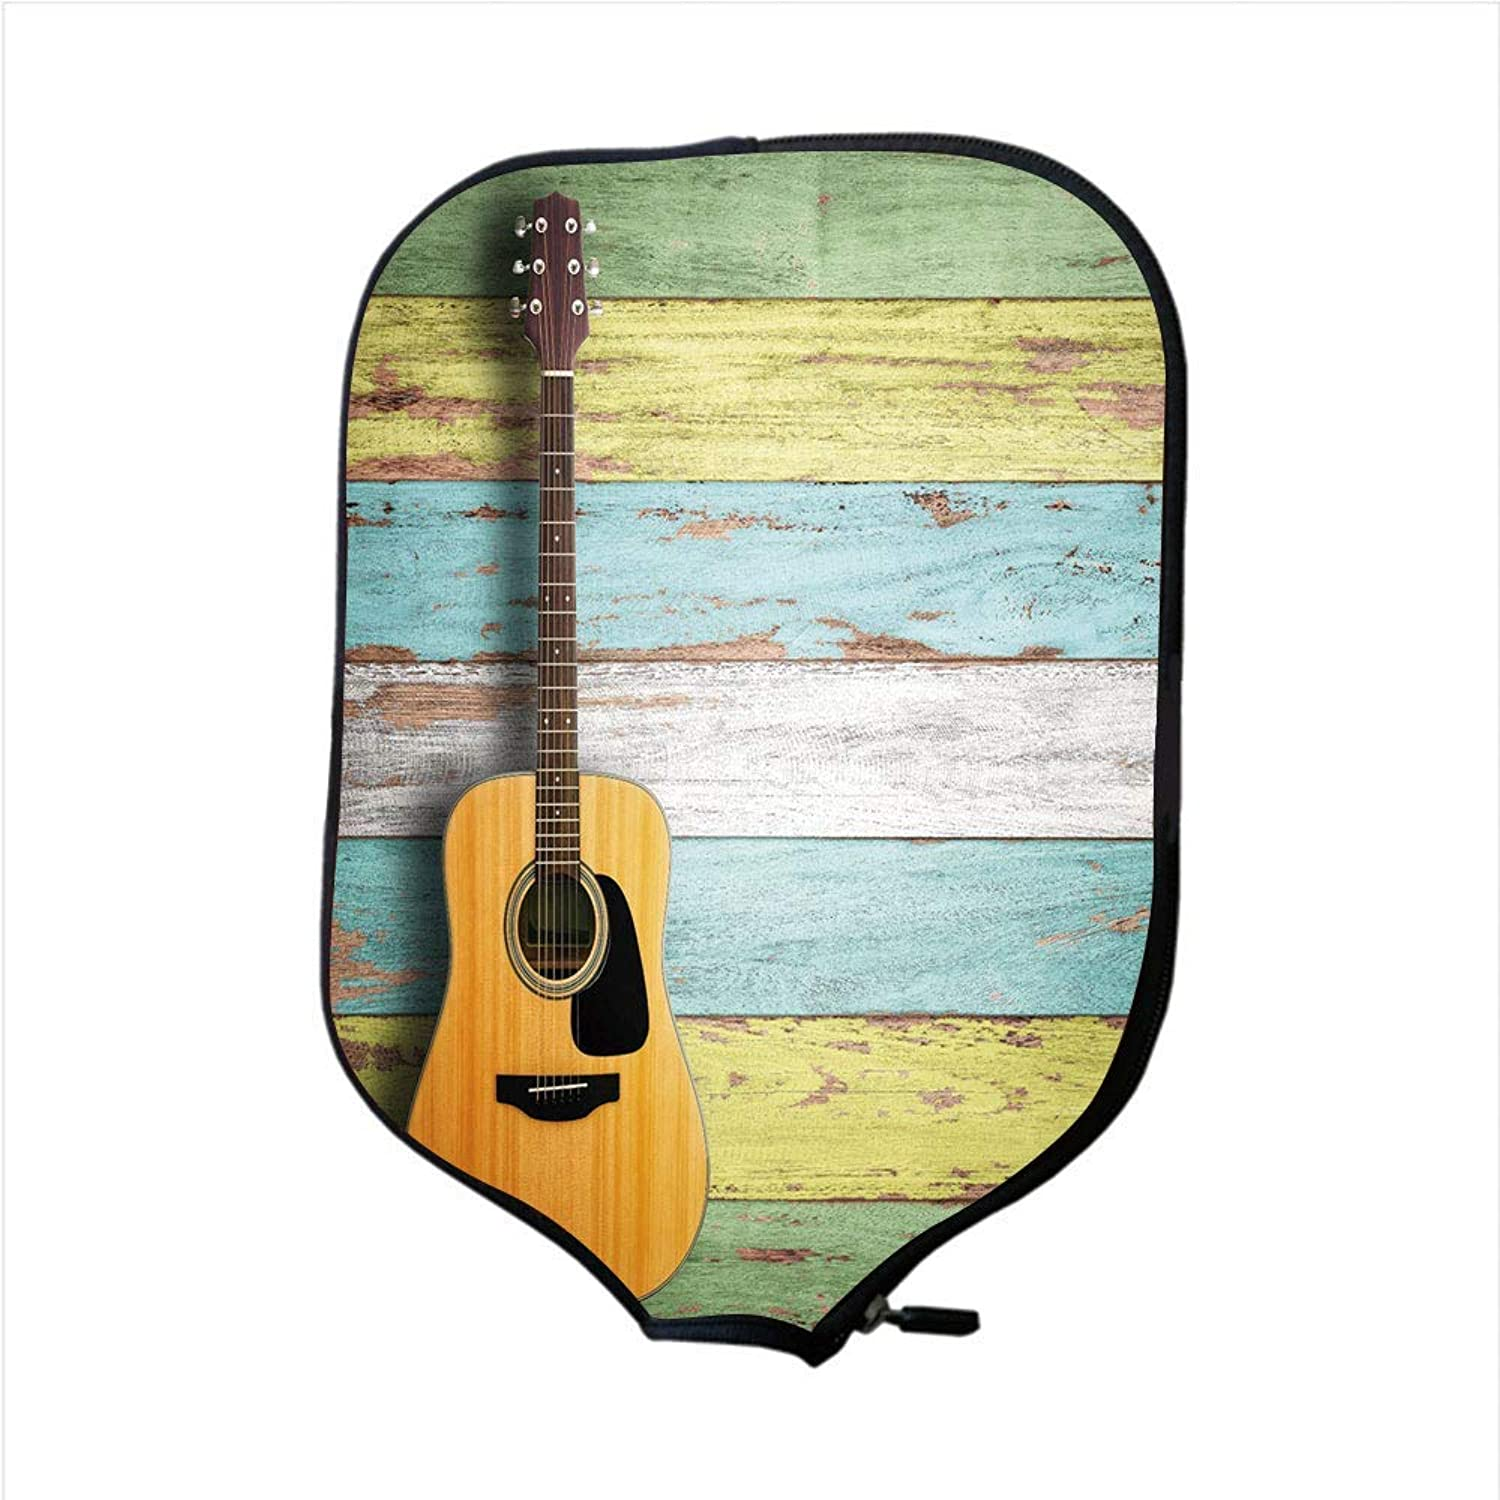 Fine Neoprene Pickleball Paddle Racket Cover Case,Music Decor,Acoustic Guitar on colorful Painted Aged Wooden Planks Rustic Country Decor,Multicolor,Fit for Most Rackets